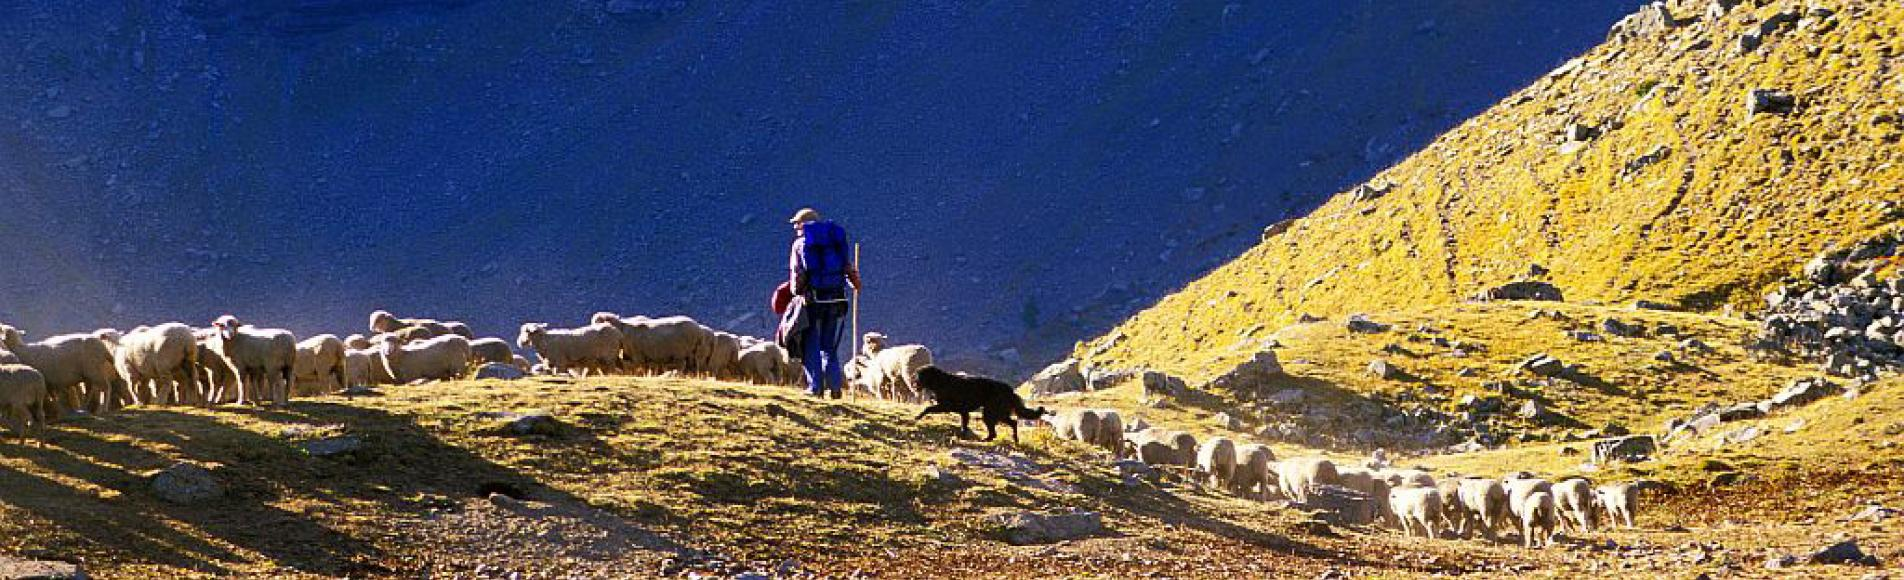 pastoralisme faravel -photo R.Chevalier - Parc national des Ecrins